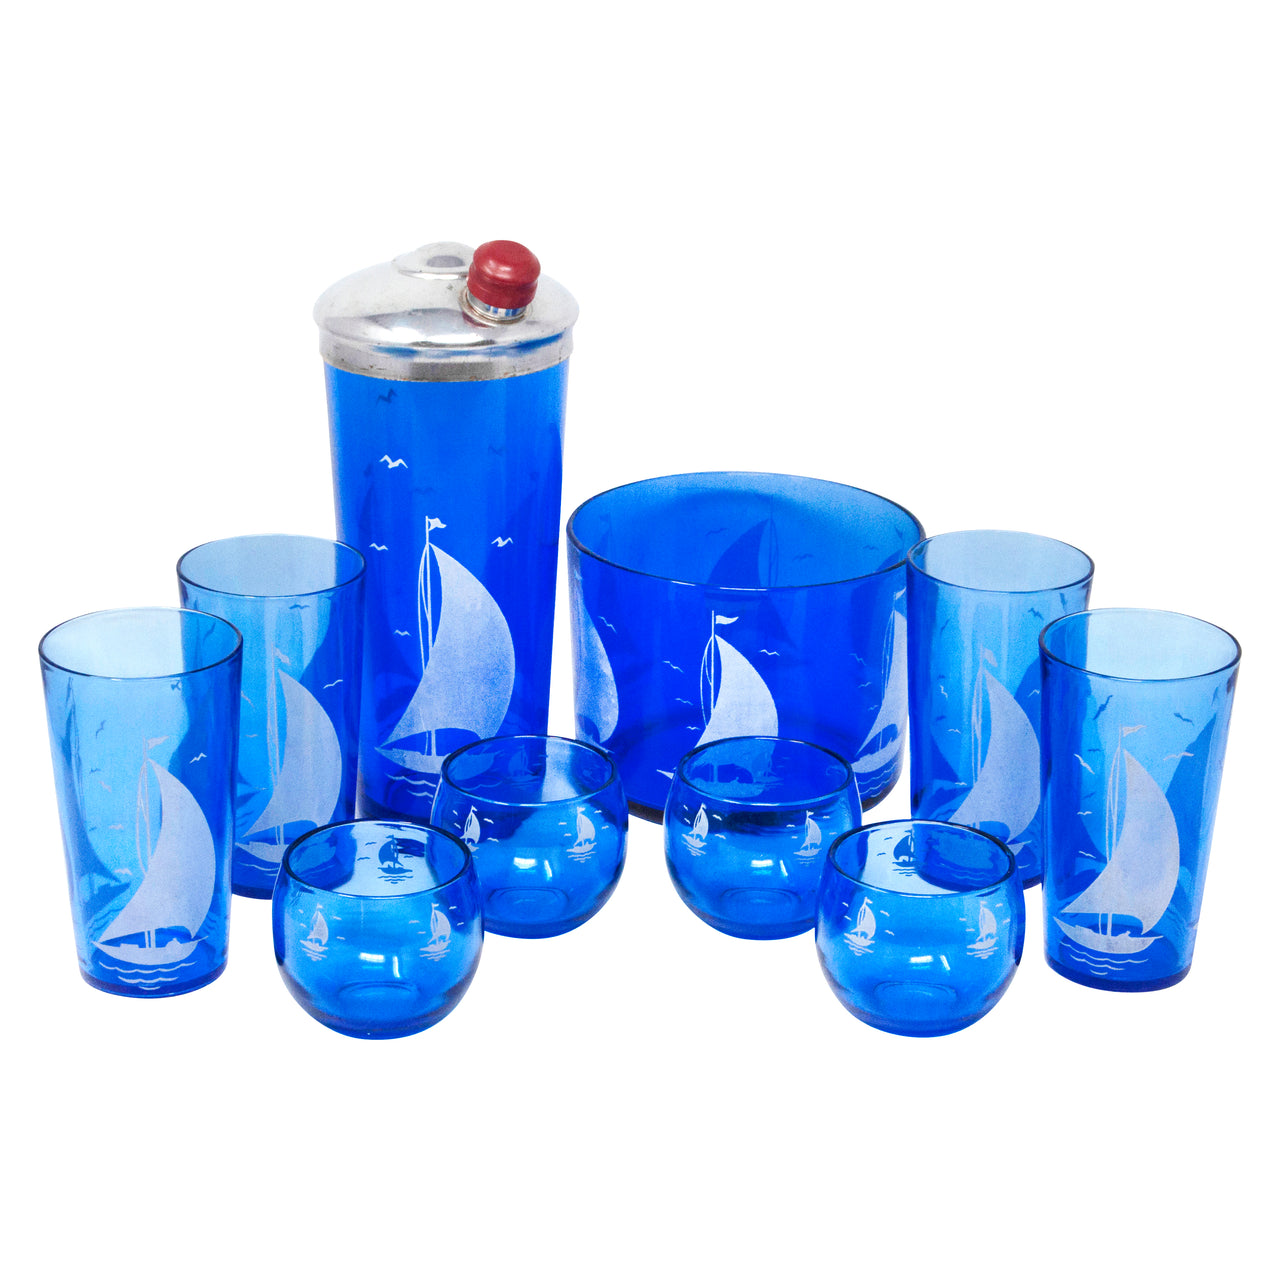 Vintage Hazel Atlas Cobalt Sailboat Cocktail Shaker Set | The Hour Shop